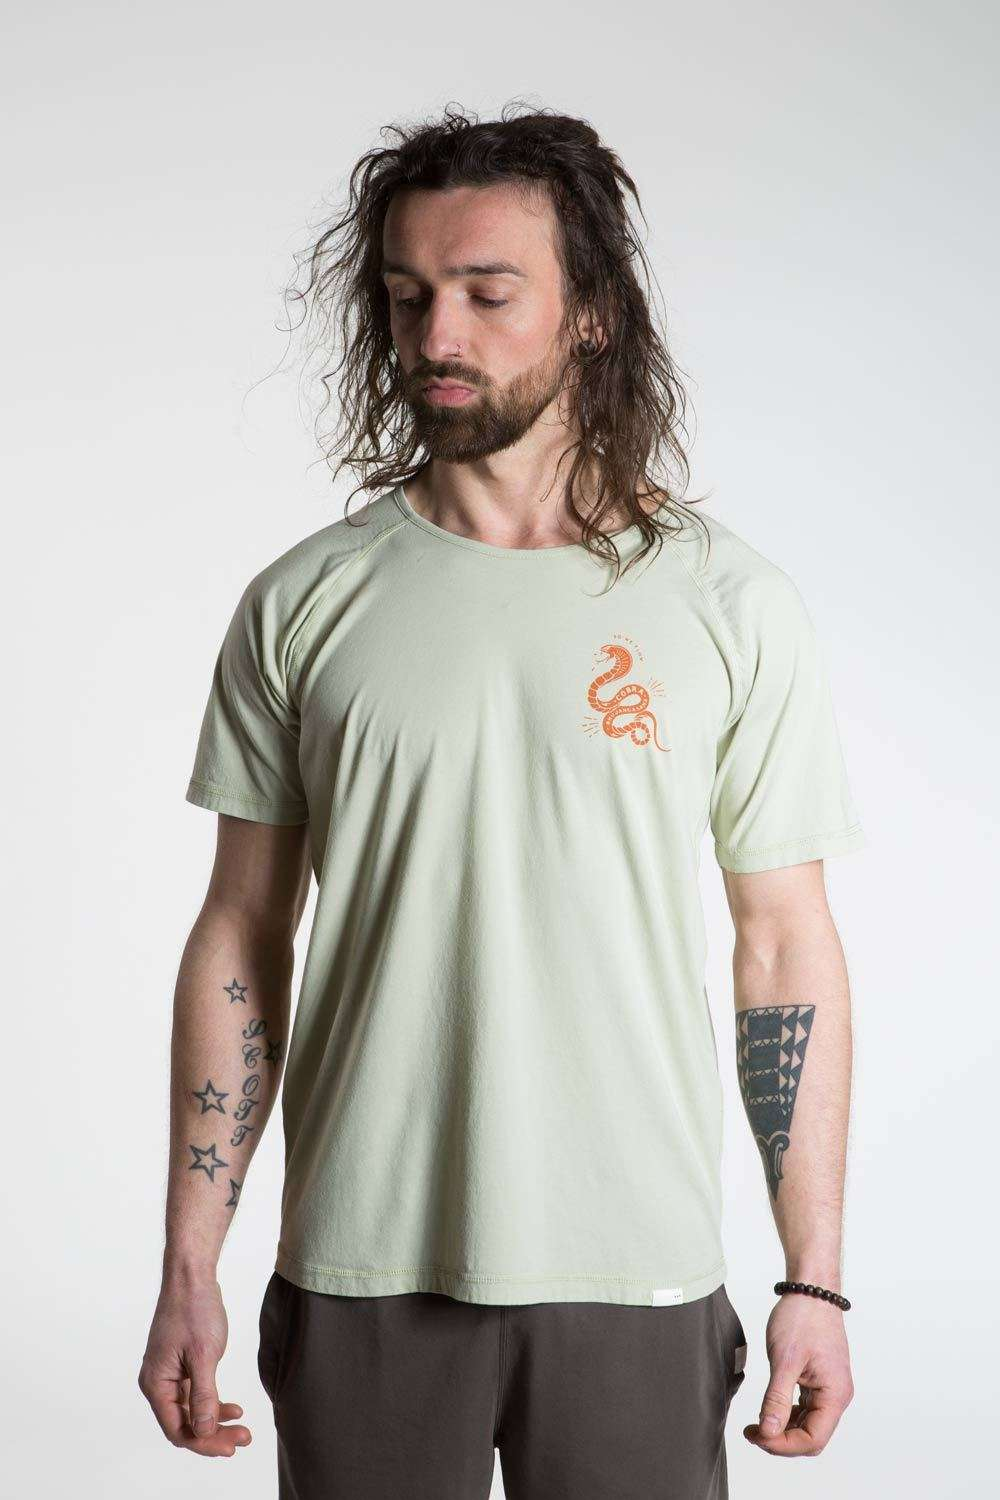 Cobra T-shirt - Alfalfa by So We Flow...